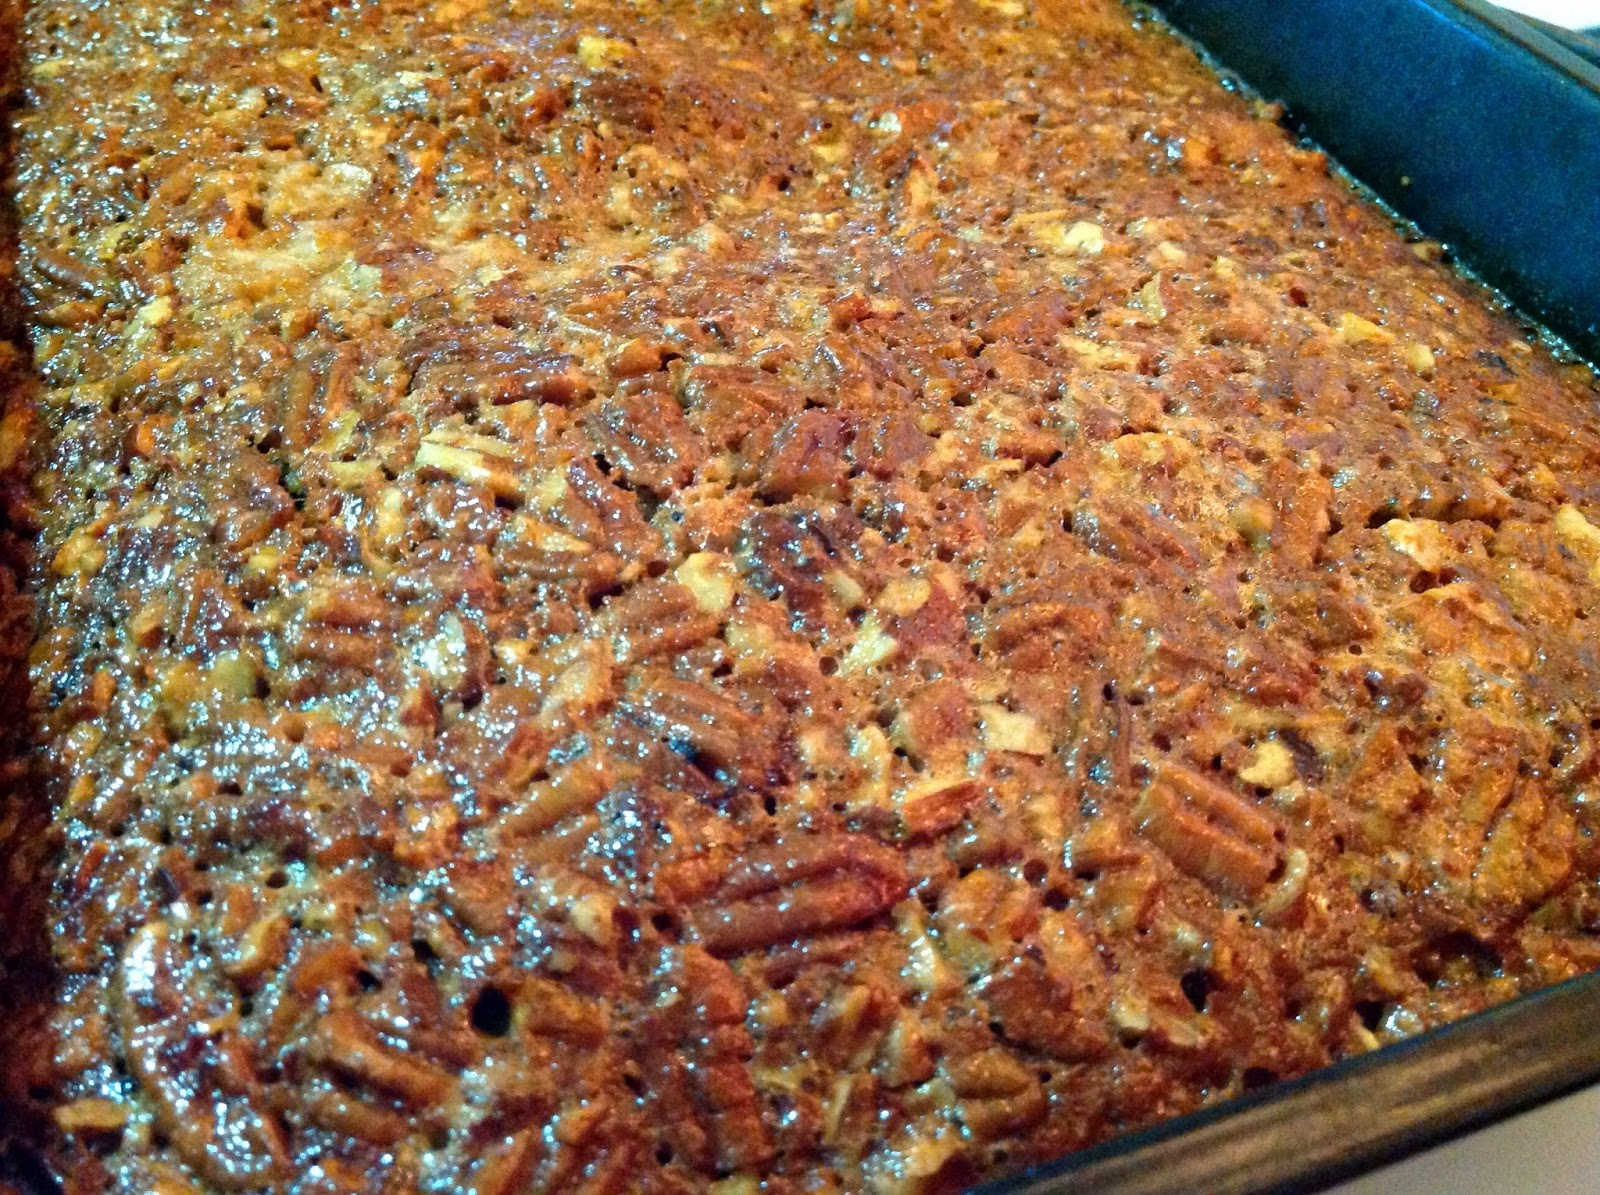 ... : Christmas Countdown: Golden Syrup Pecan Bites and One Baking Fail